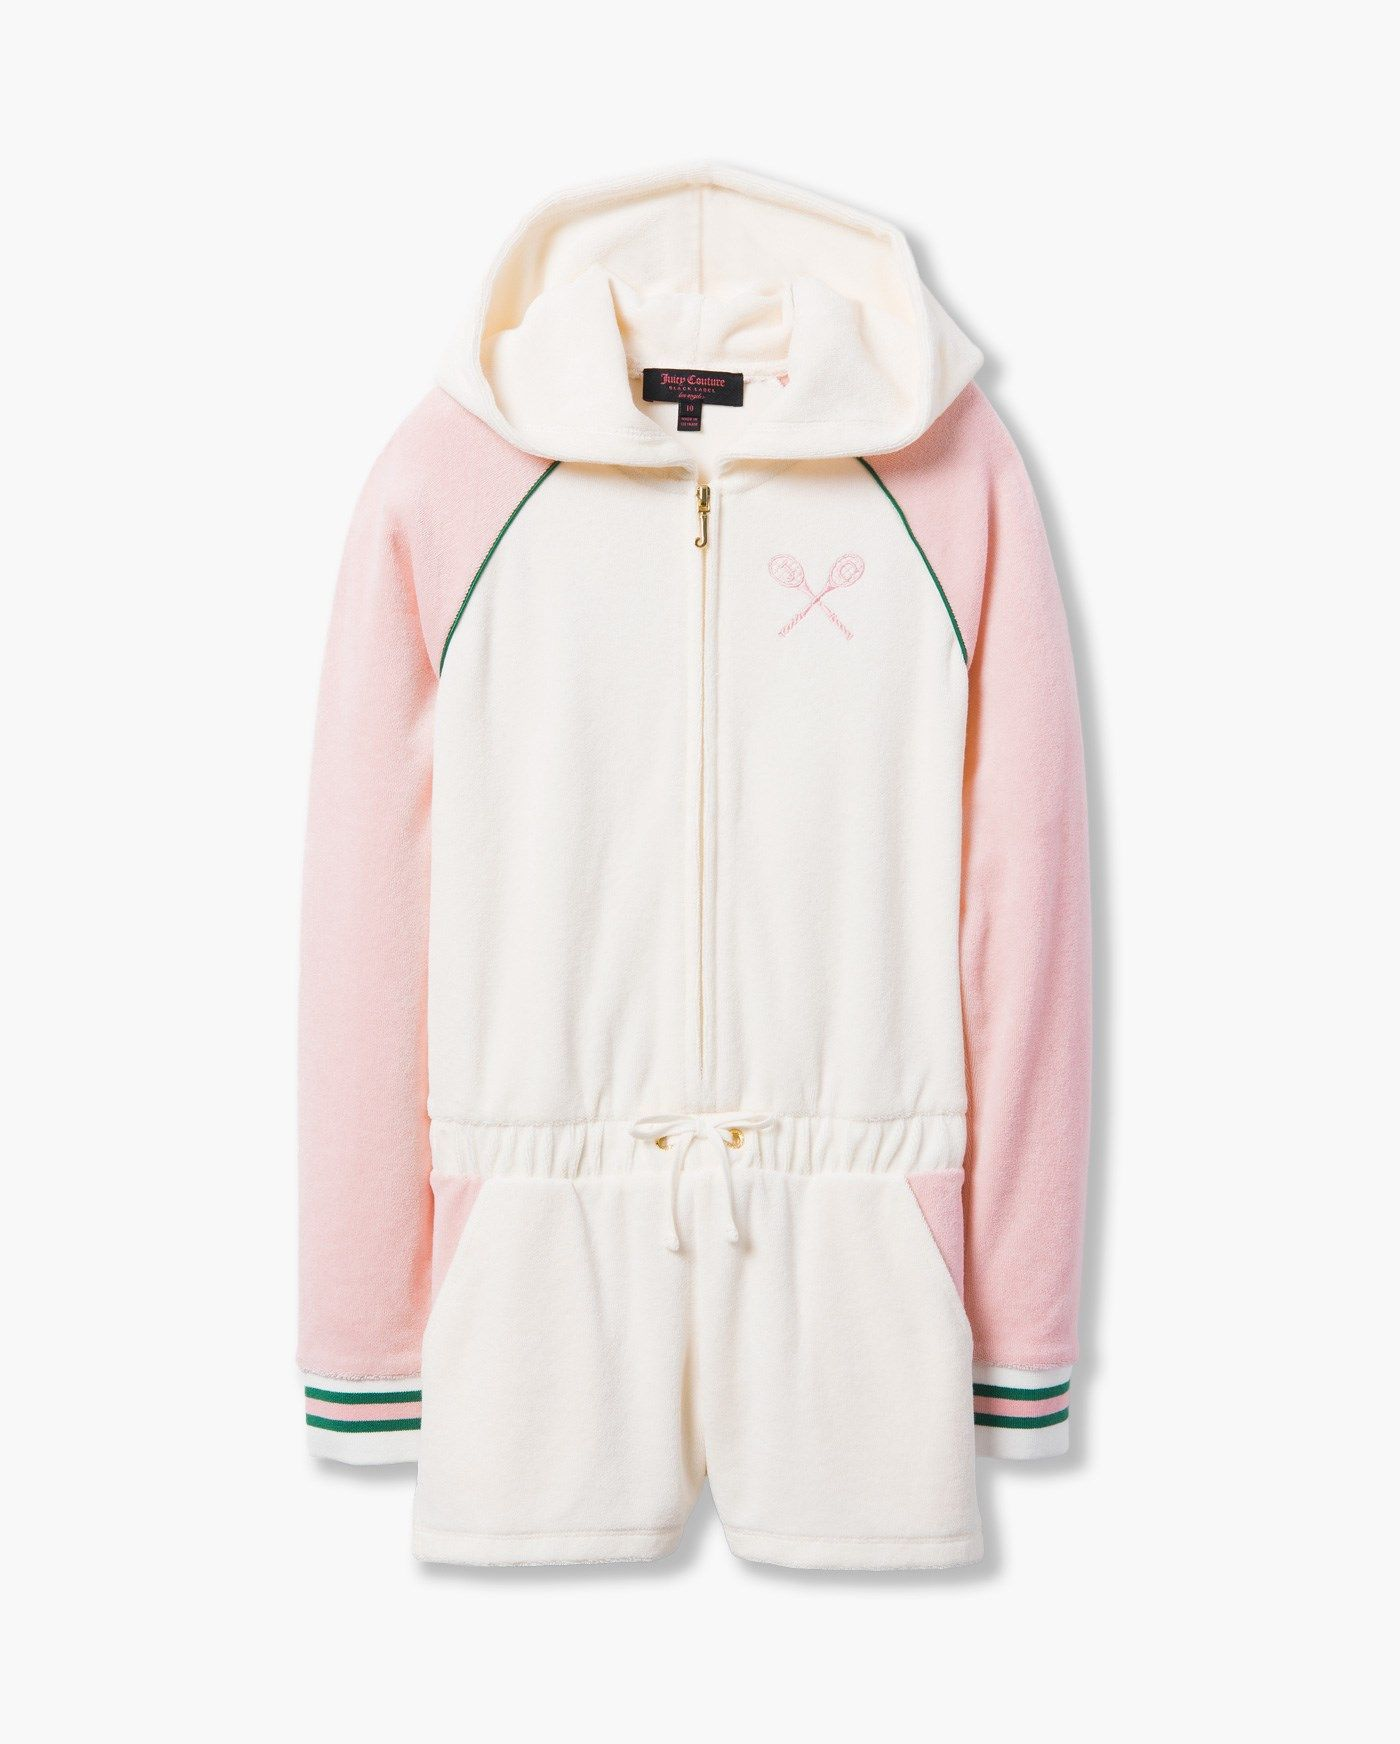 22188fd7e JUICY TENNIS MICROTERRY ROMPER - Juicy Couture | Jo in 2019 | Girls ...